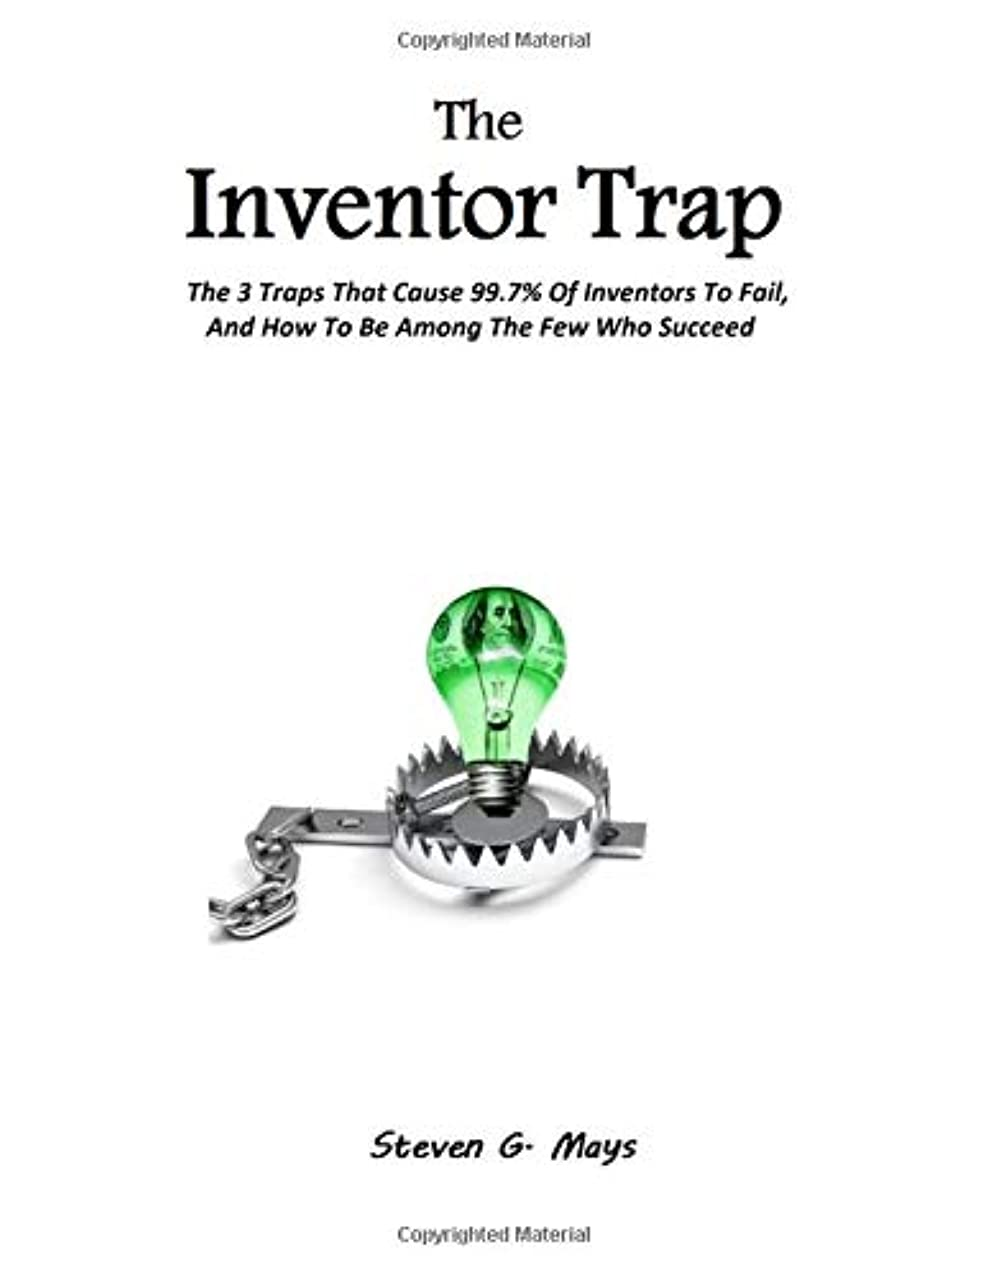 The Inventor Trap: The 3 Traps That Cause 99.7% Of Inventors To Fail, And How To Be Among The Few Who Succeed